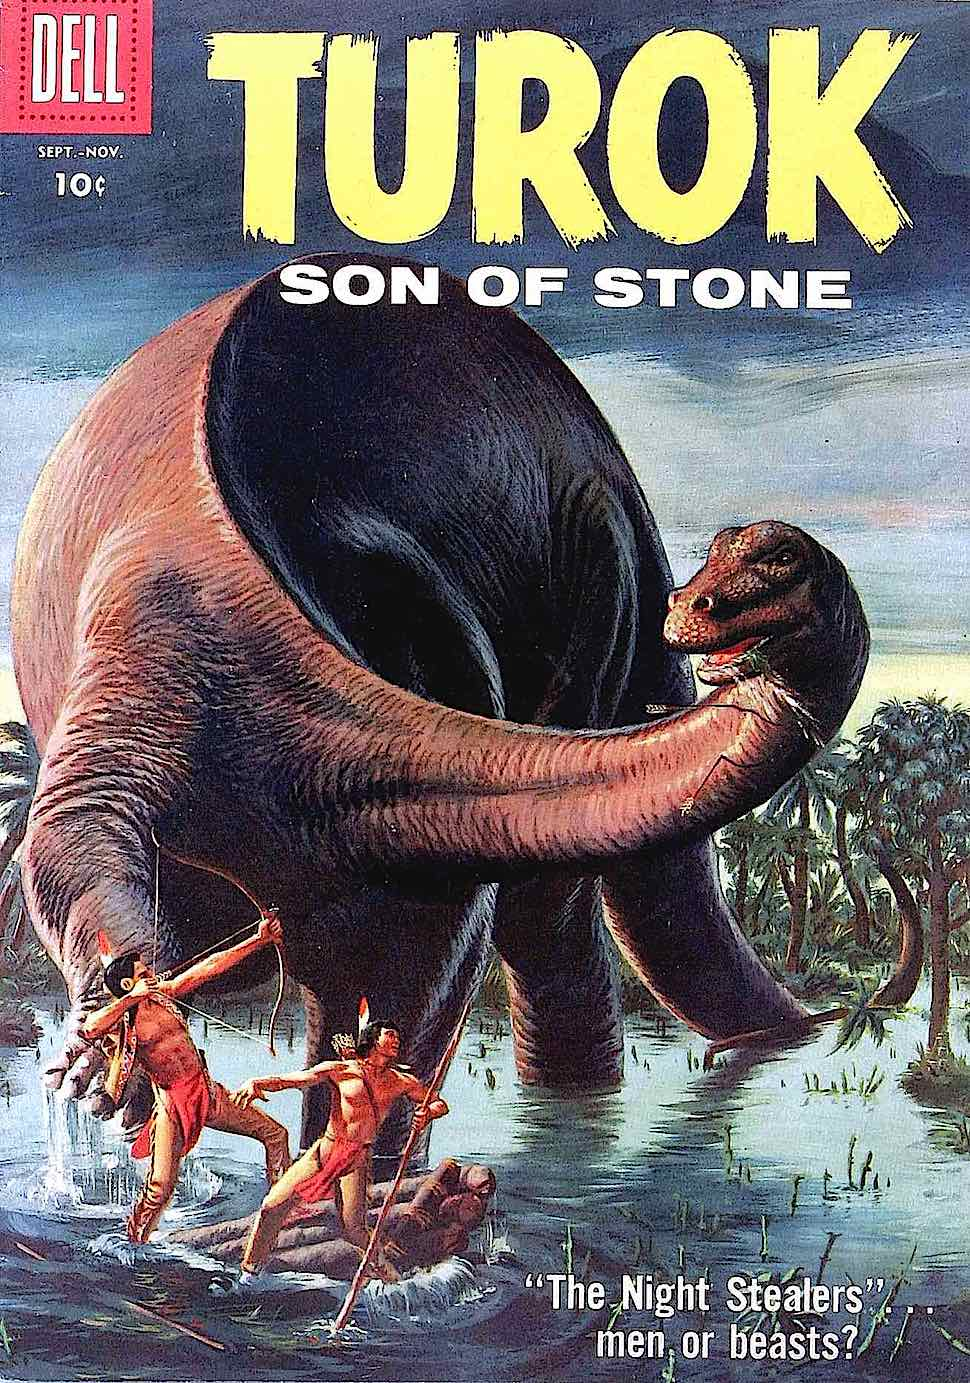 the 1950s & 1960s comic book Turok Son of Stone showing a dinosaur